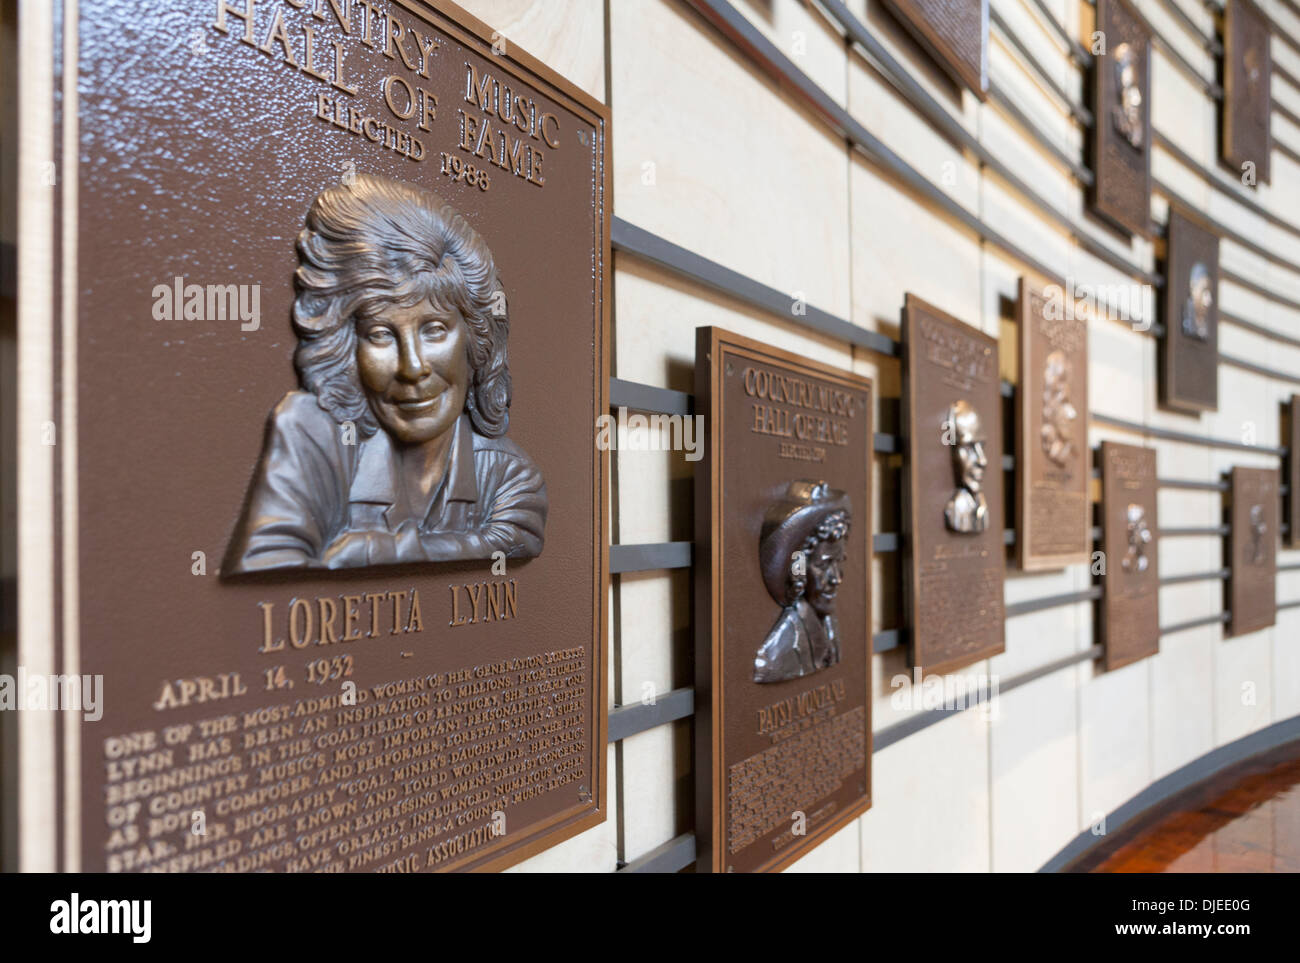 Loretta Lynn Plaque unter anderem in die Country Music Hall Of Fame in Nashville, TN, USA Stockbild